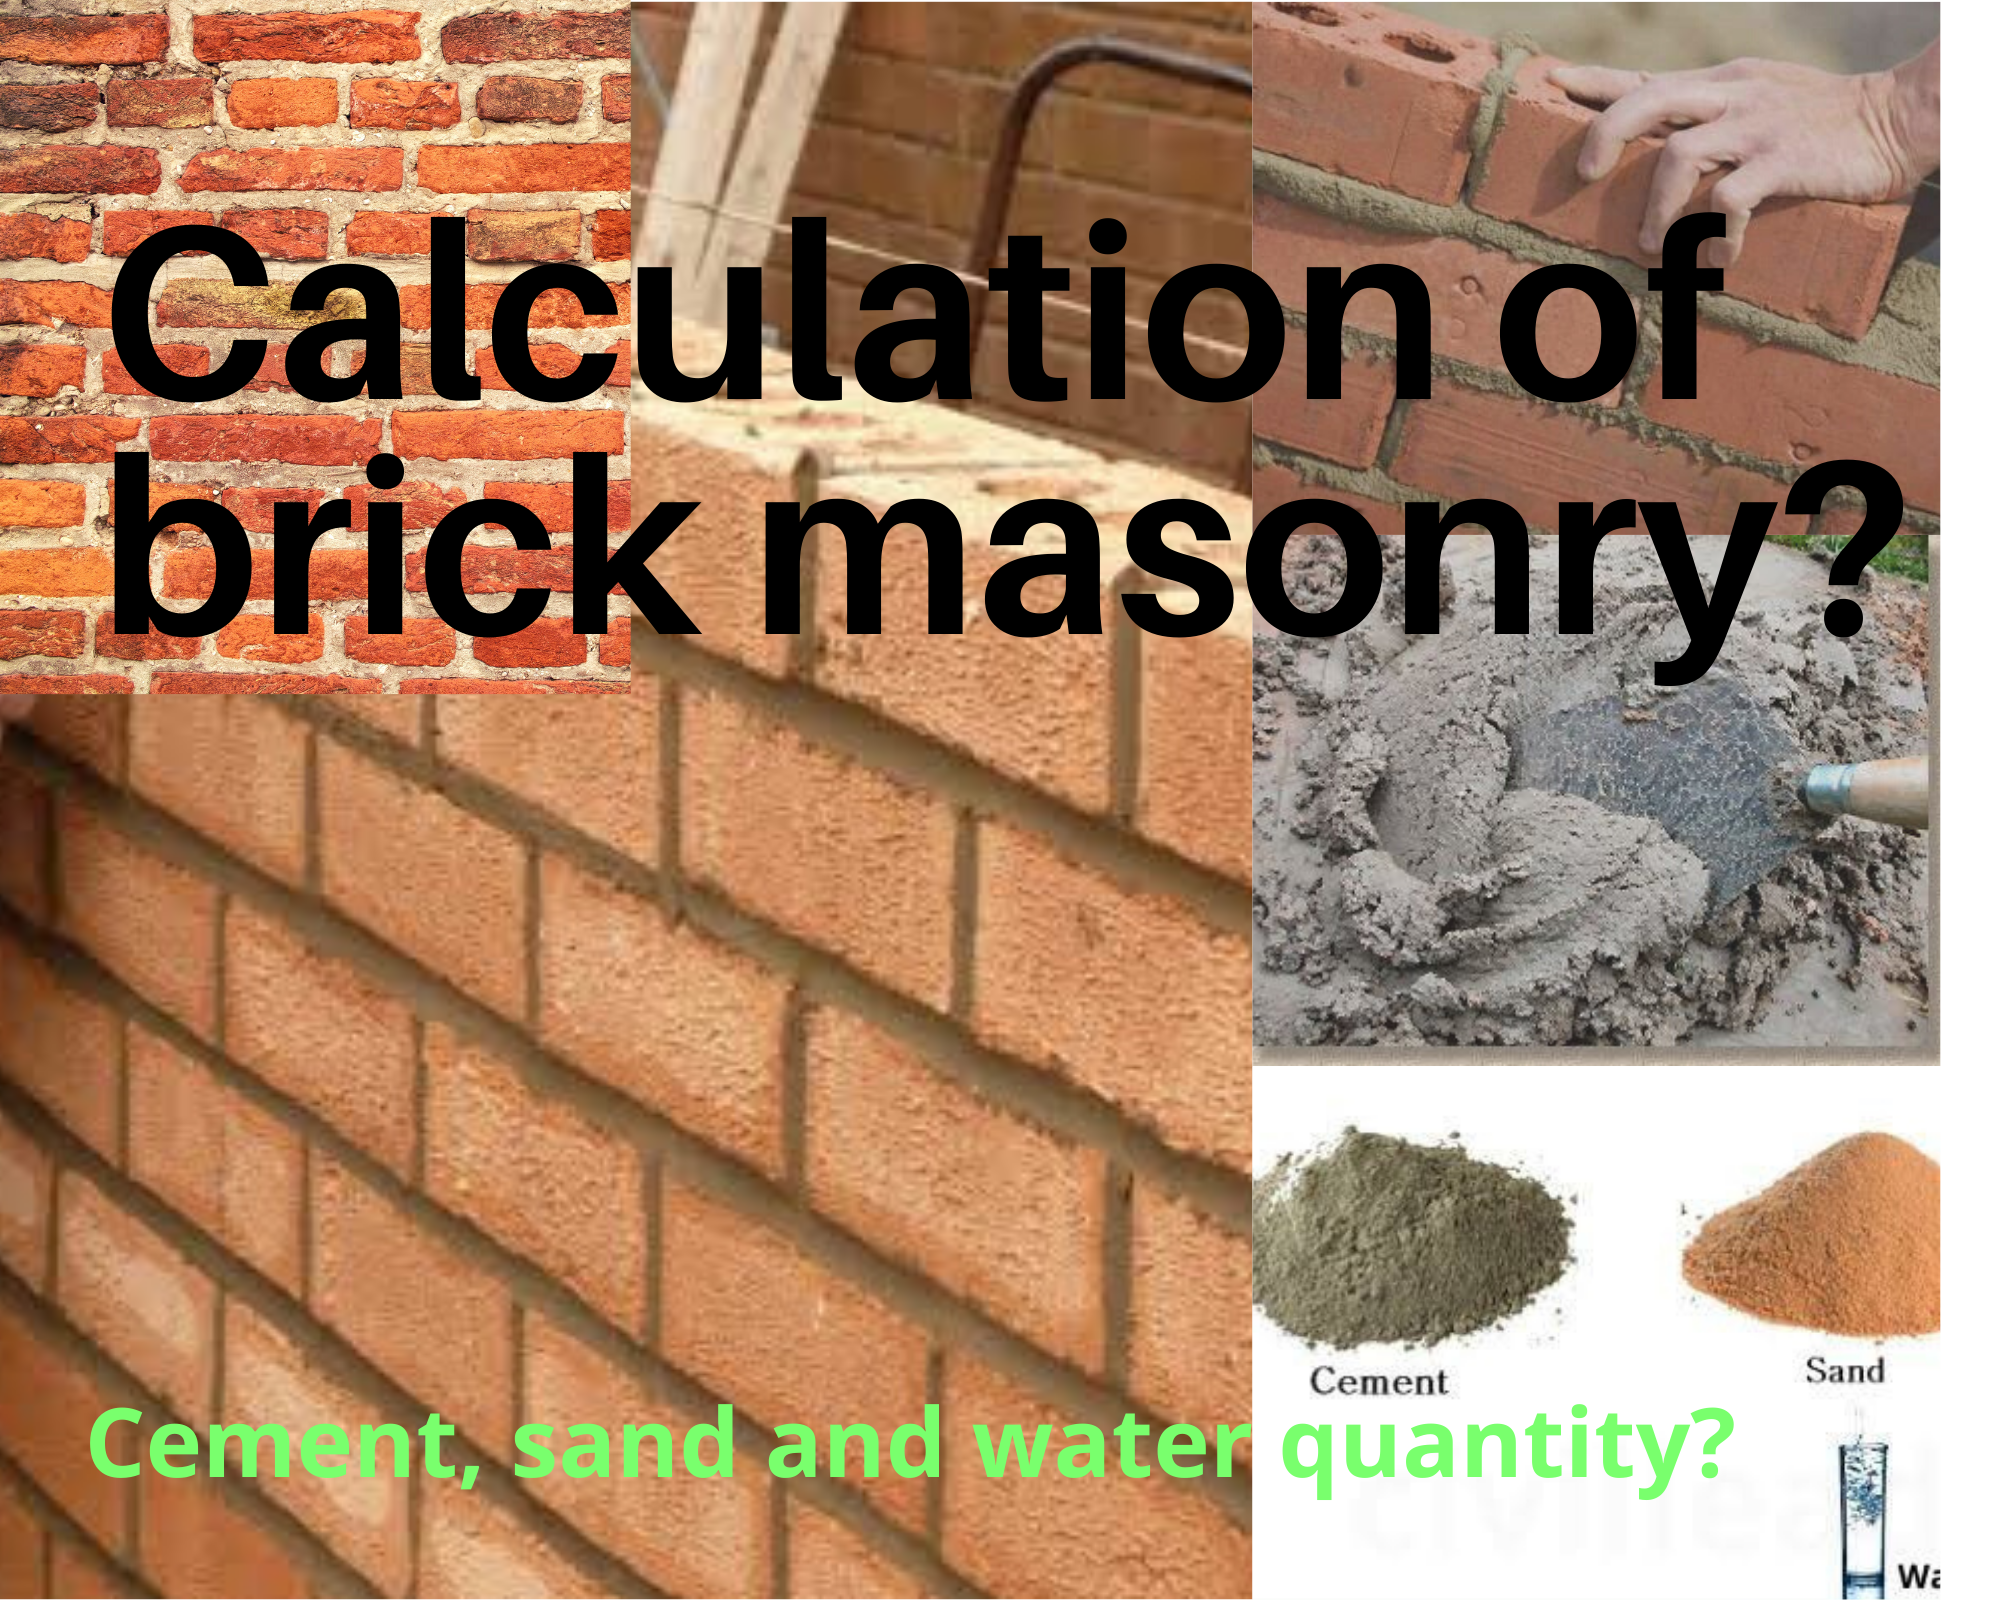 How to calculate brick masonry & mortar cement, sand?